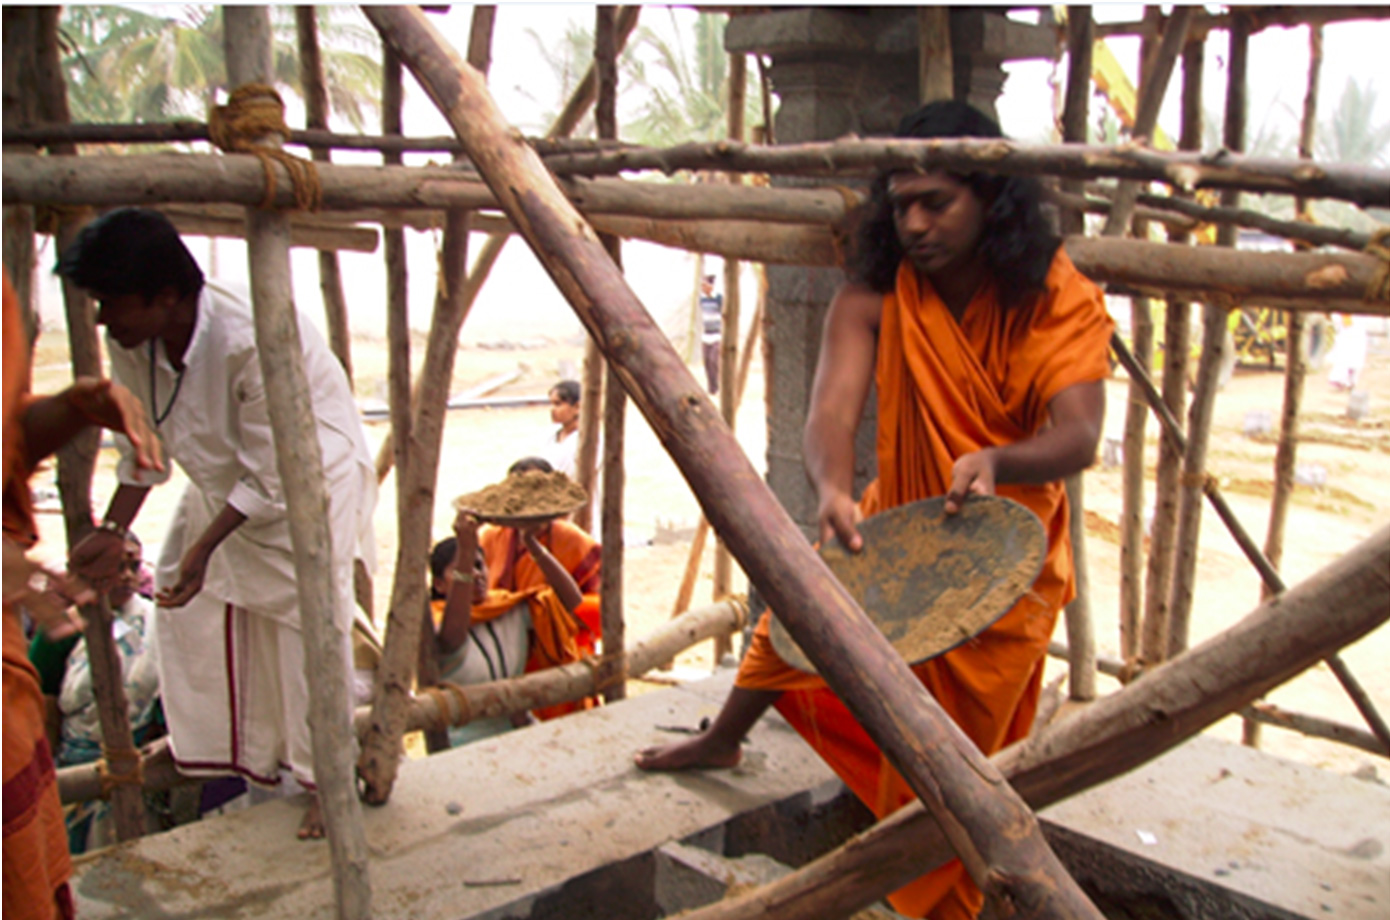 A hands-on leader, here Swamiji is helping build a temple